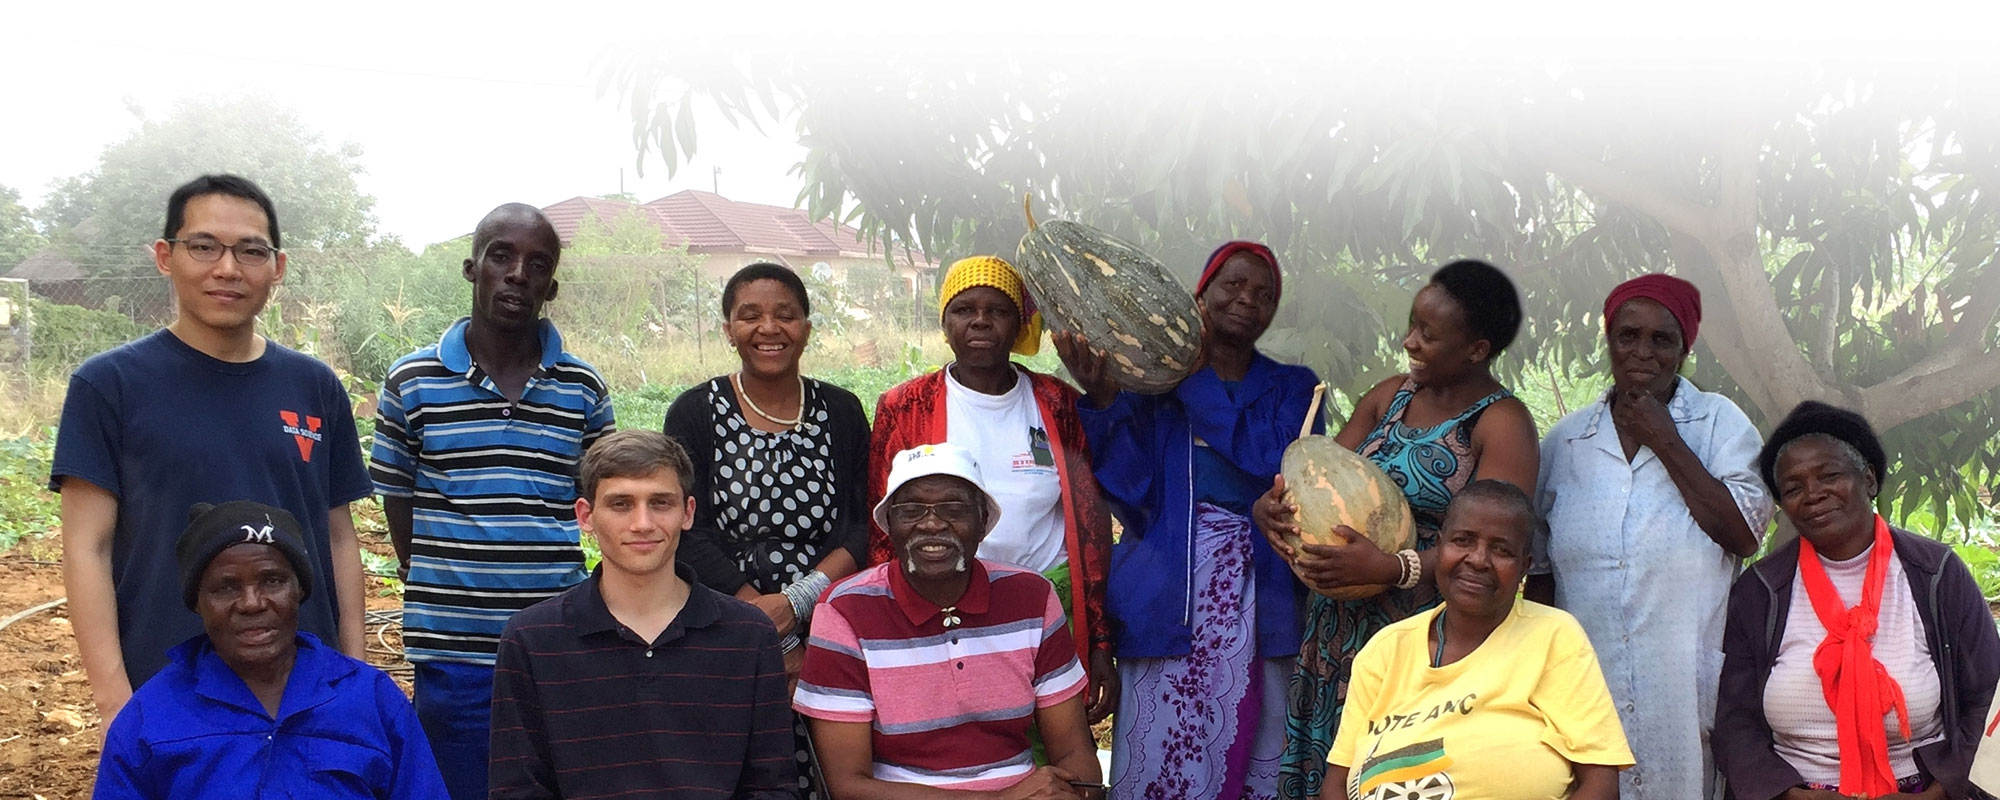 Cameron Haddad and Kamwoo Lee posing with a group of South Africans in Limpopo, South Africa.